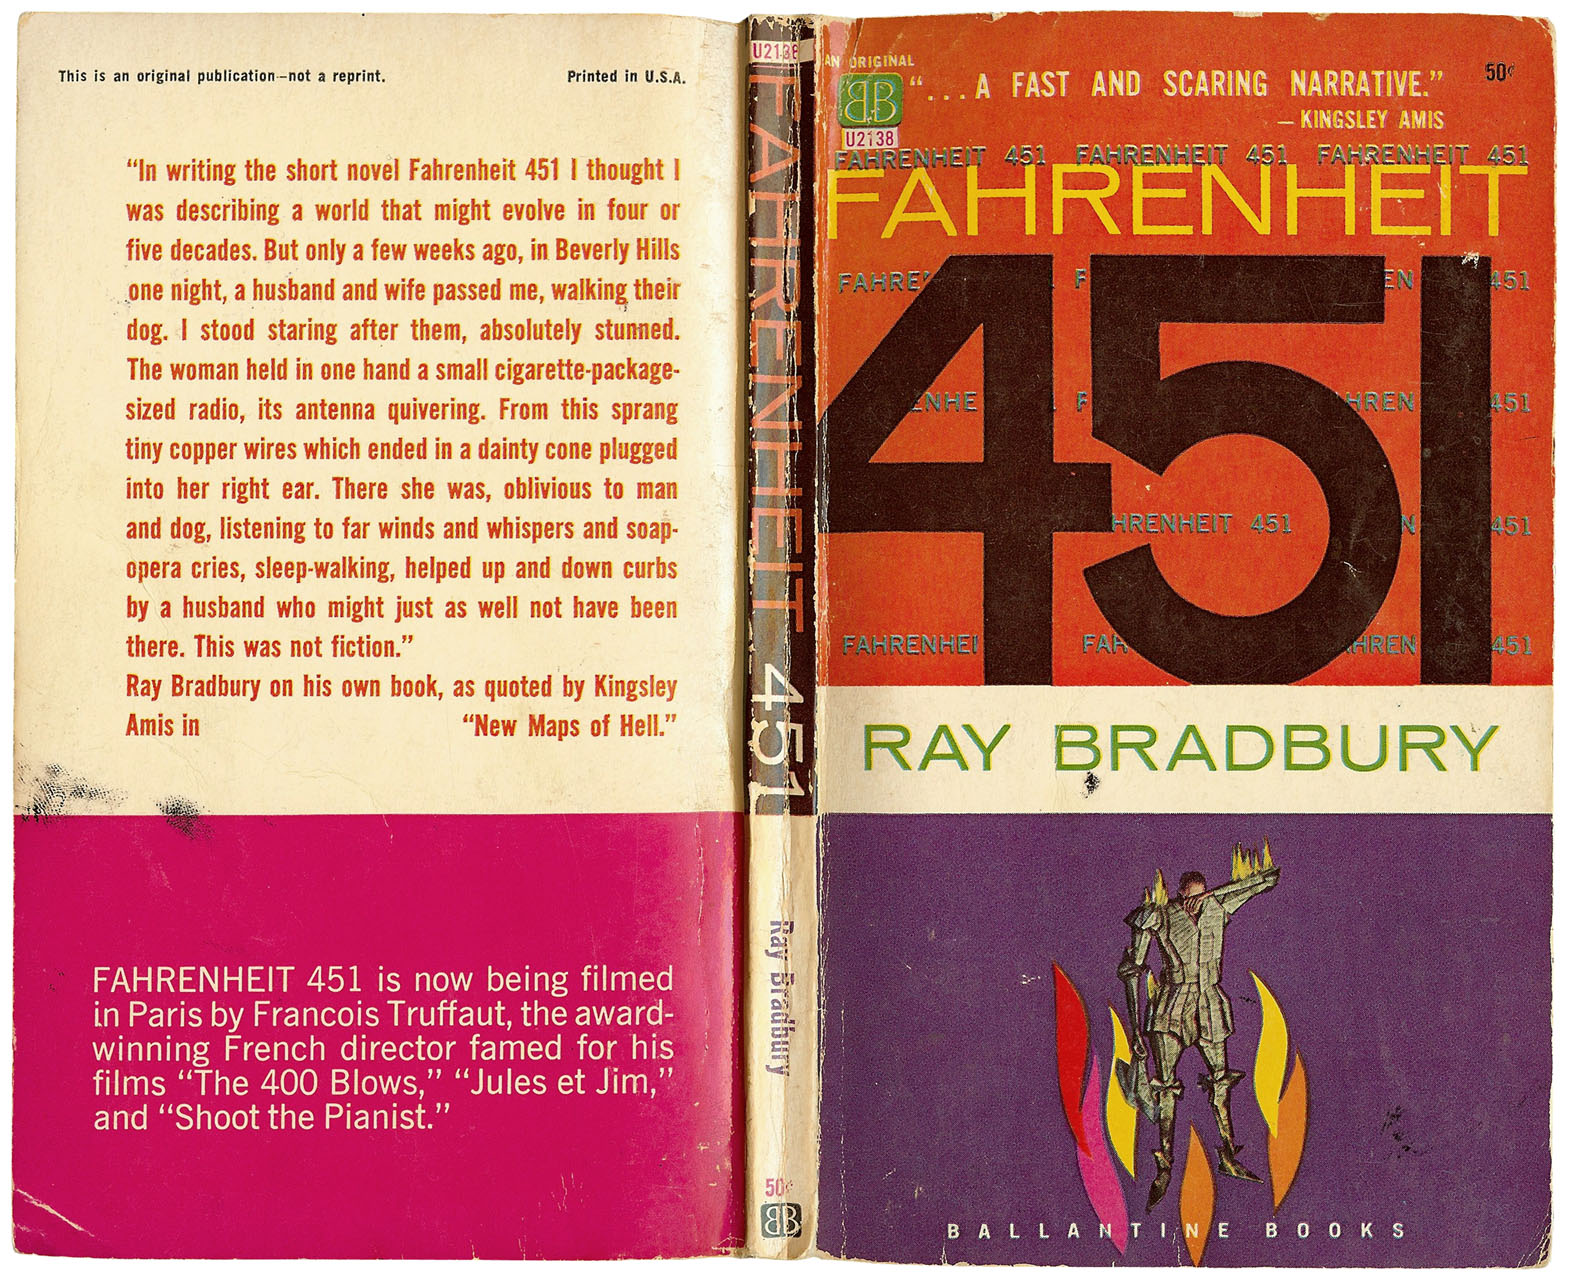 fahrenheit 451 by ray bradbury utopian In ray bradbury's book fahrenheit 451, the main character montag is a firefighter montag lives in a dystopia where books are forbidden if a member of their society is caught with a single.